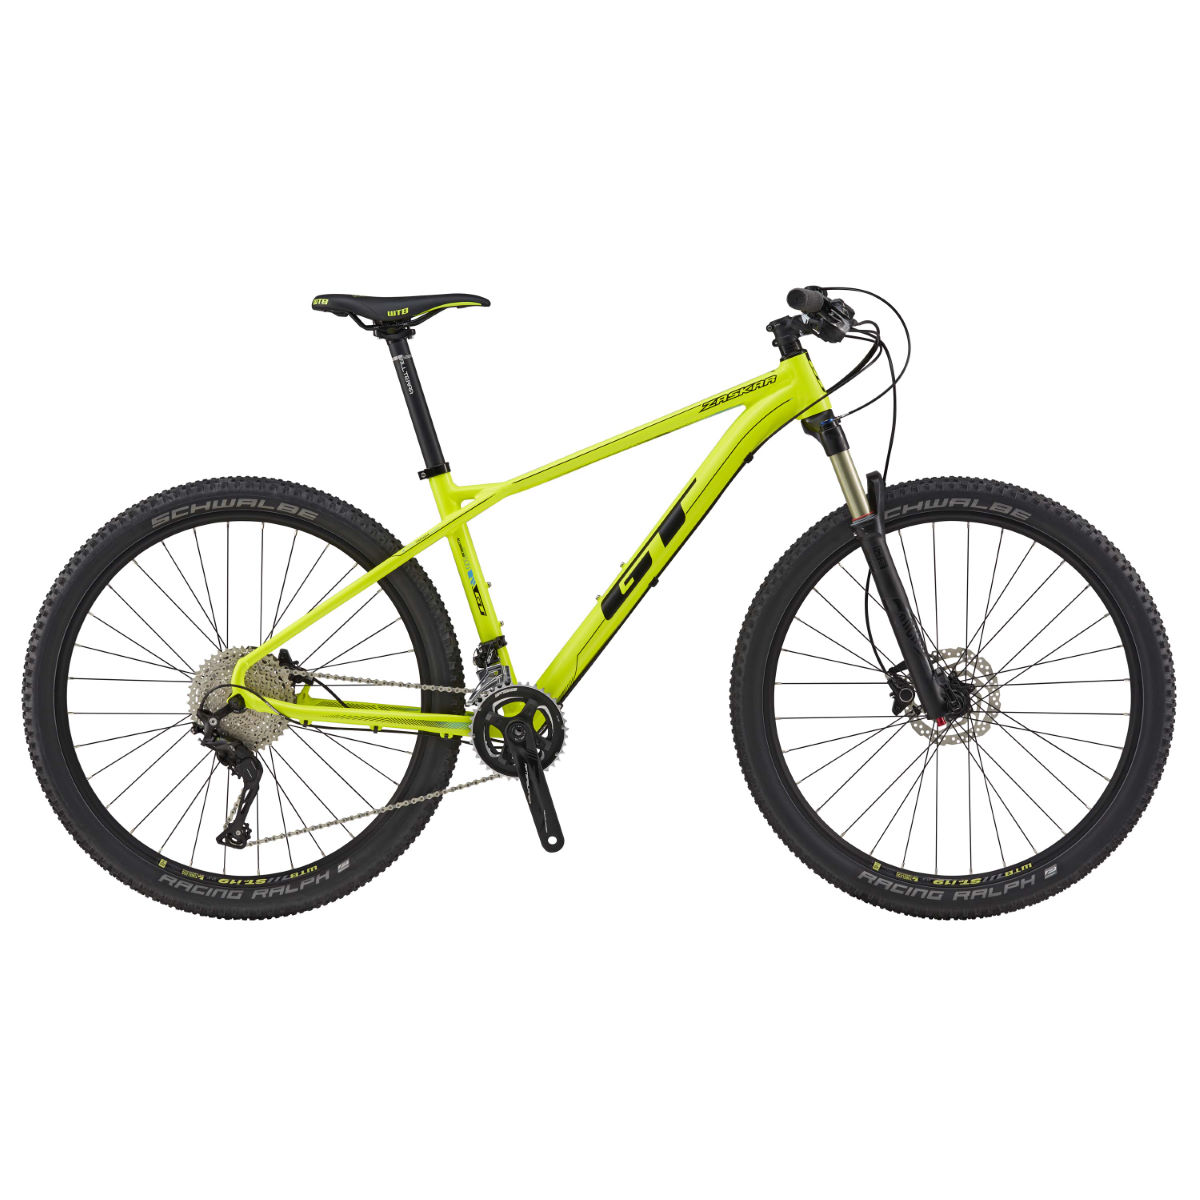 GT Zaskar AL Elite (2017) Mountain Bike   Hard Tail Mountain Bikes